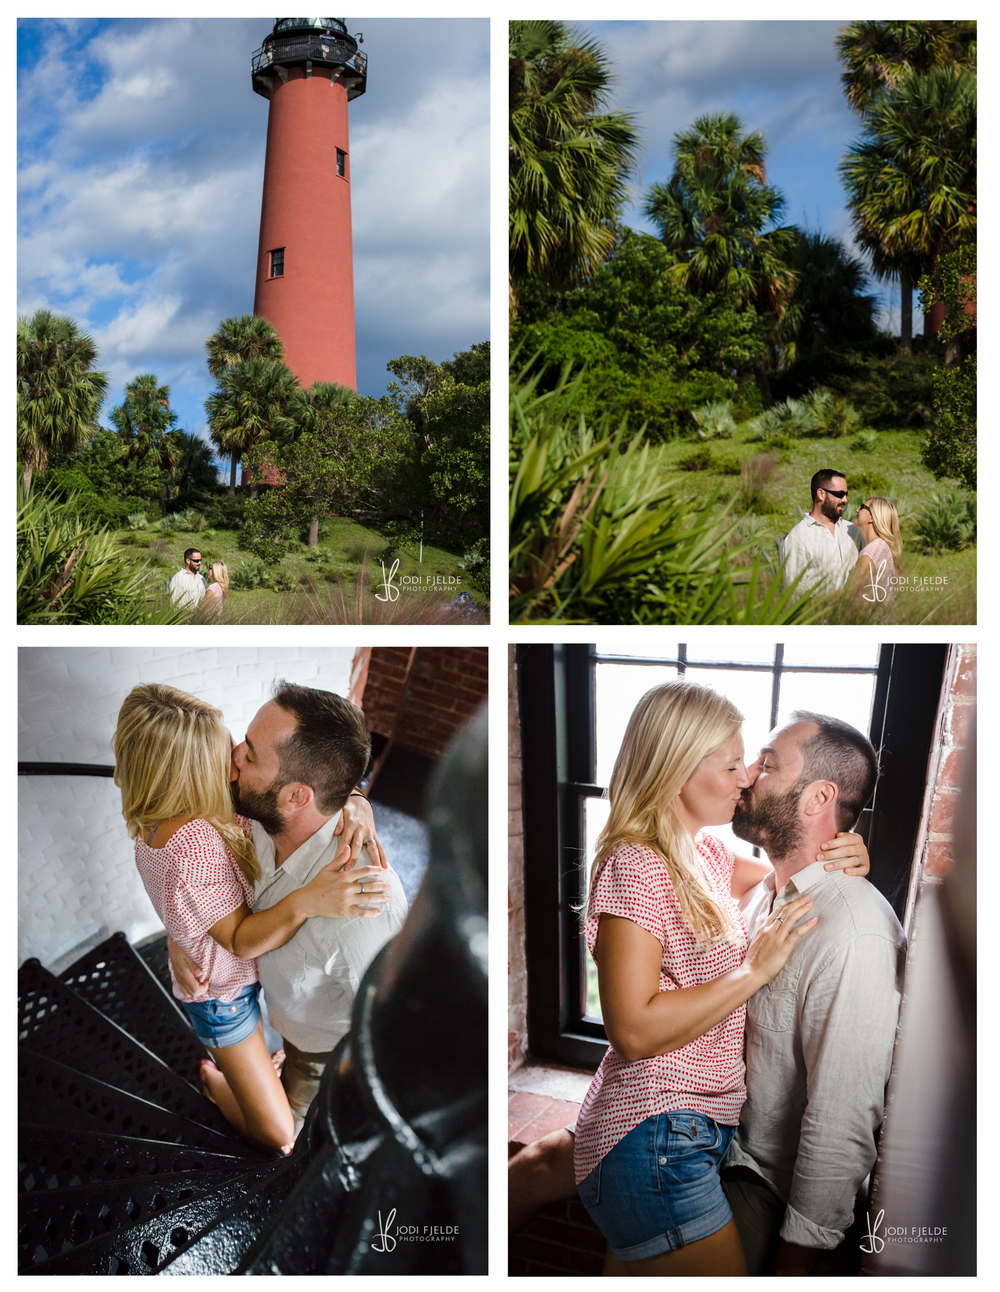 Riverbend-Park_Jupiter_lighthouse_engagement_photography_Michi_Dirk_Jodi_fjelde_Photography-5.jpg